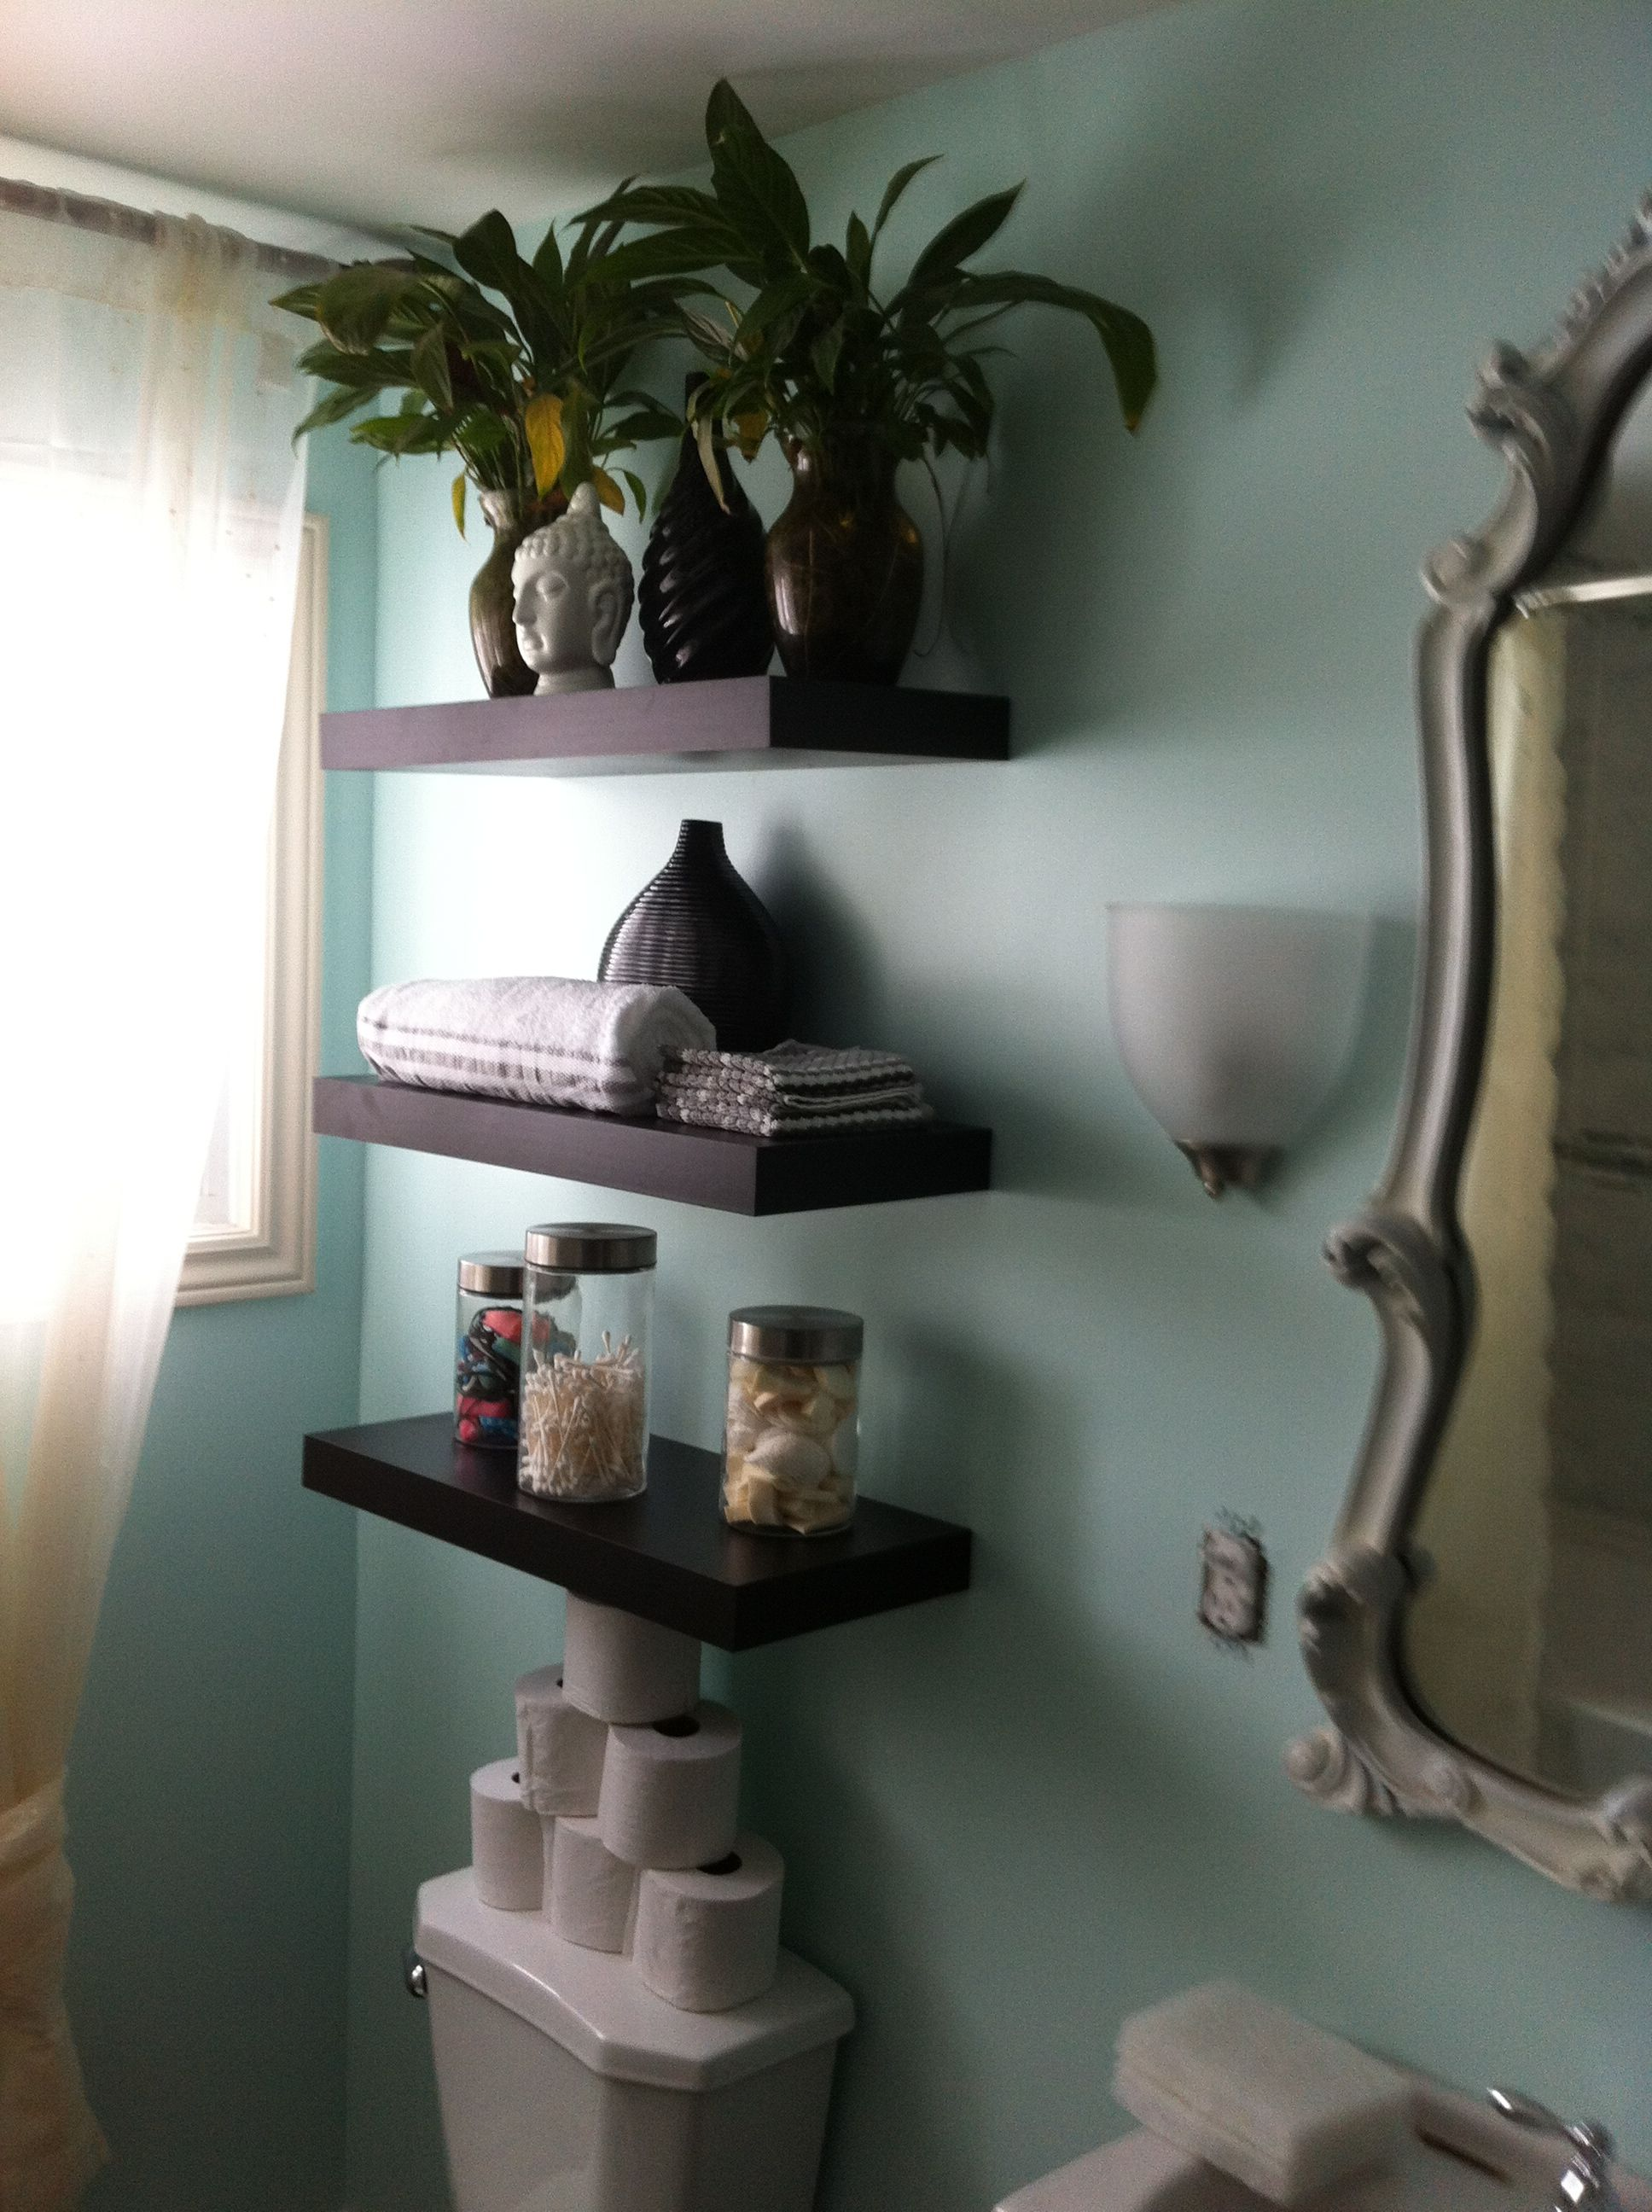 Superb img of Floating Shelves $24.99 each Home Depot Apartment Pinterest with #5B4F40 color and 2592x1936 pixels